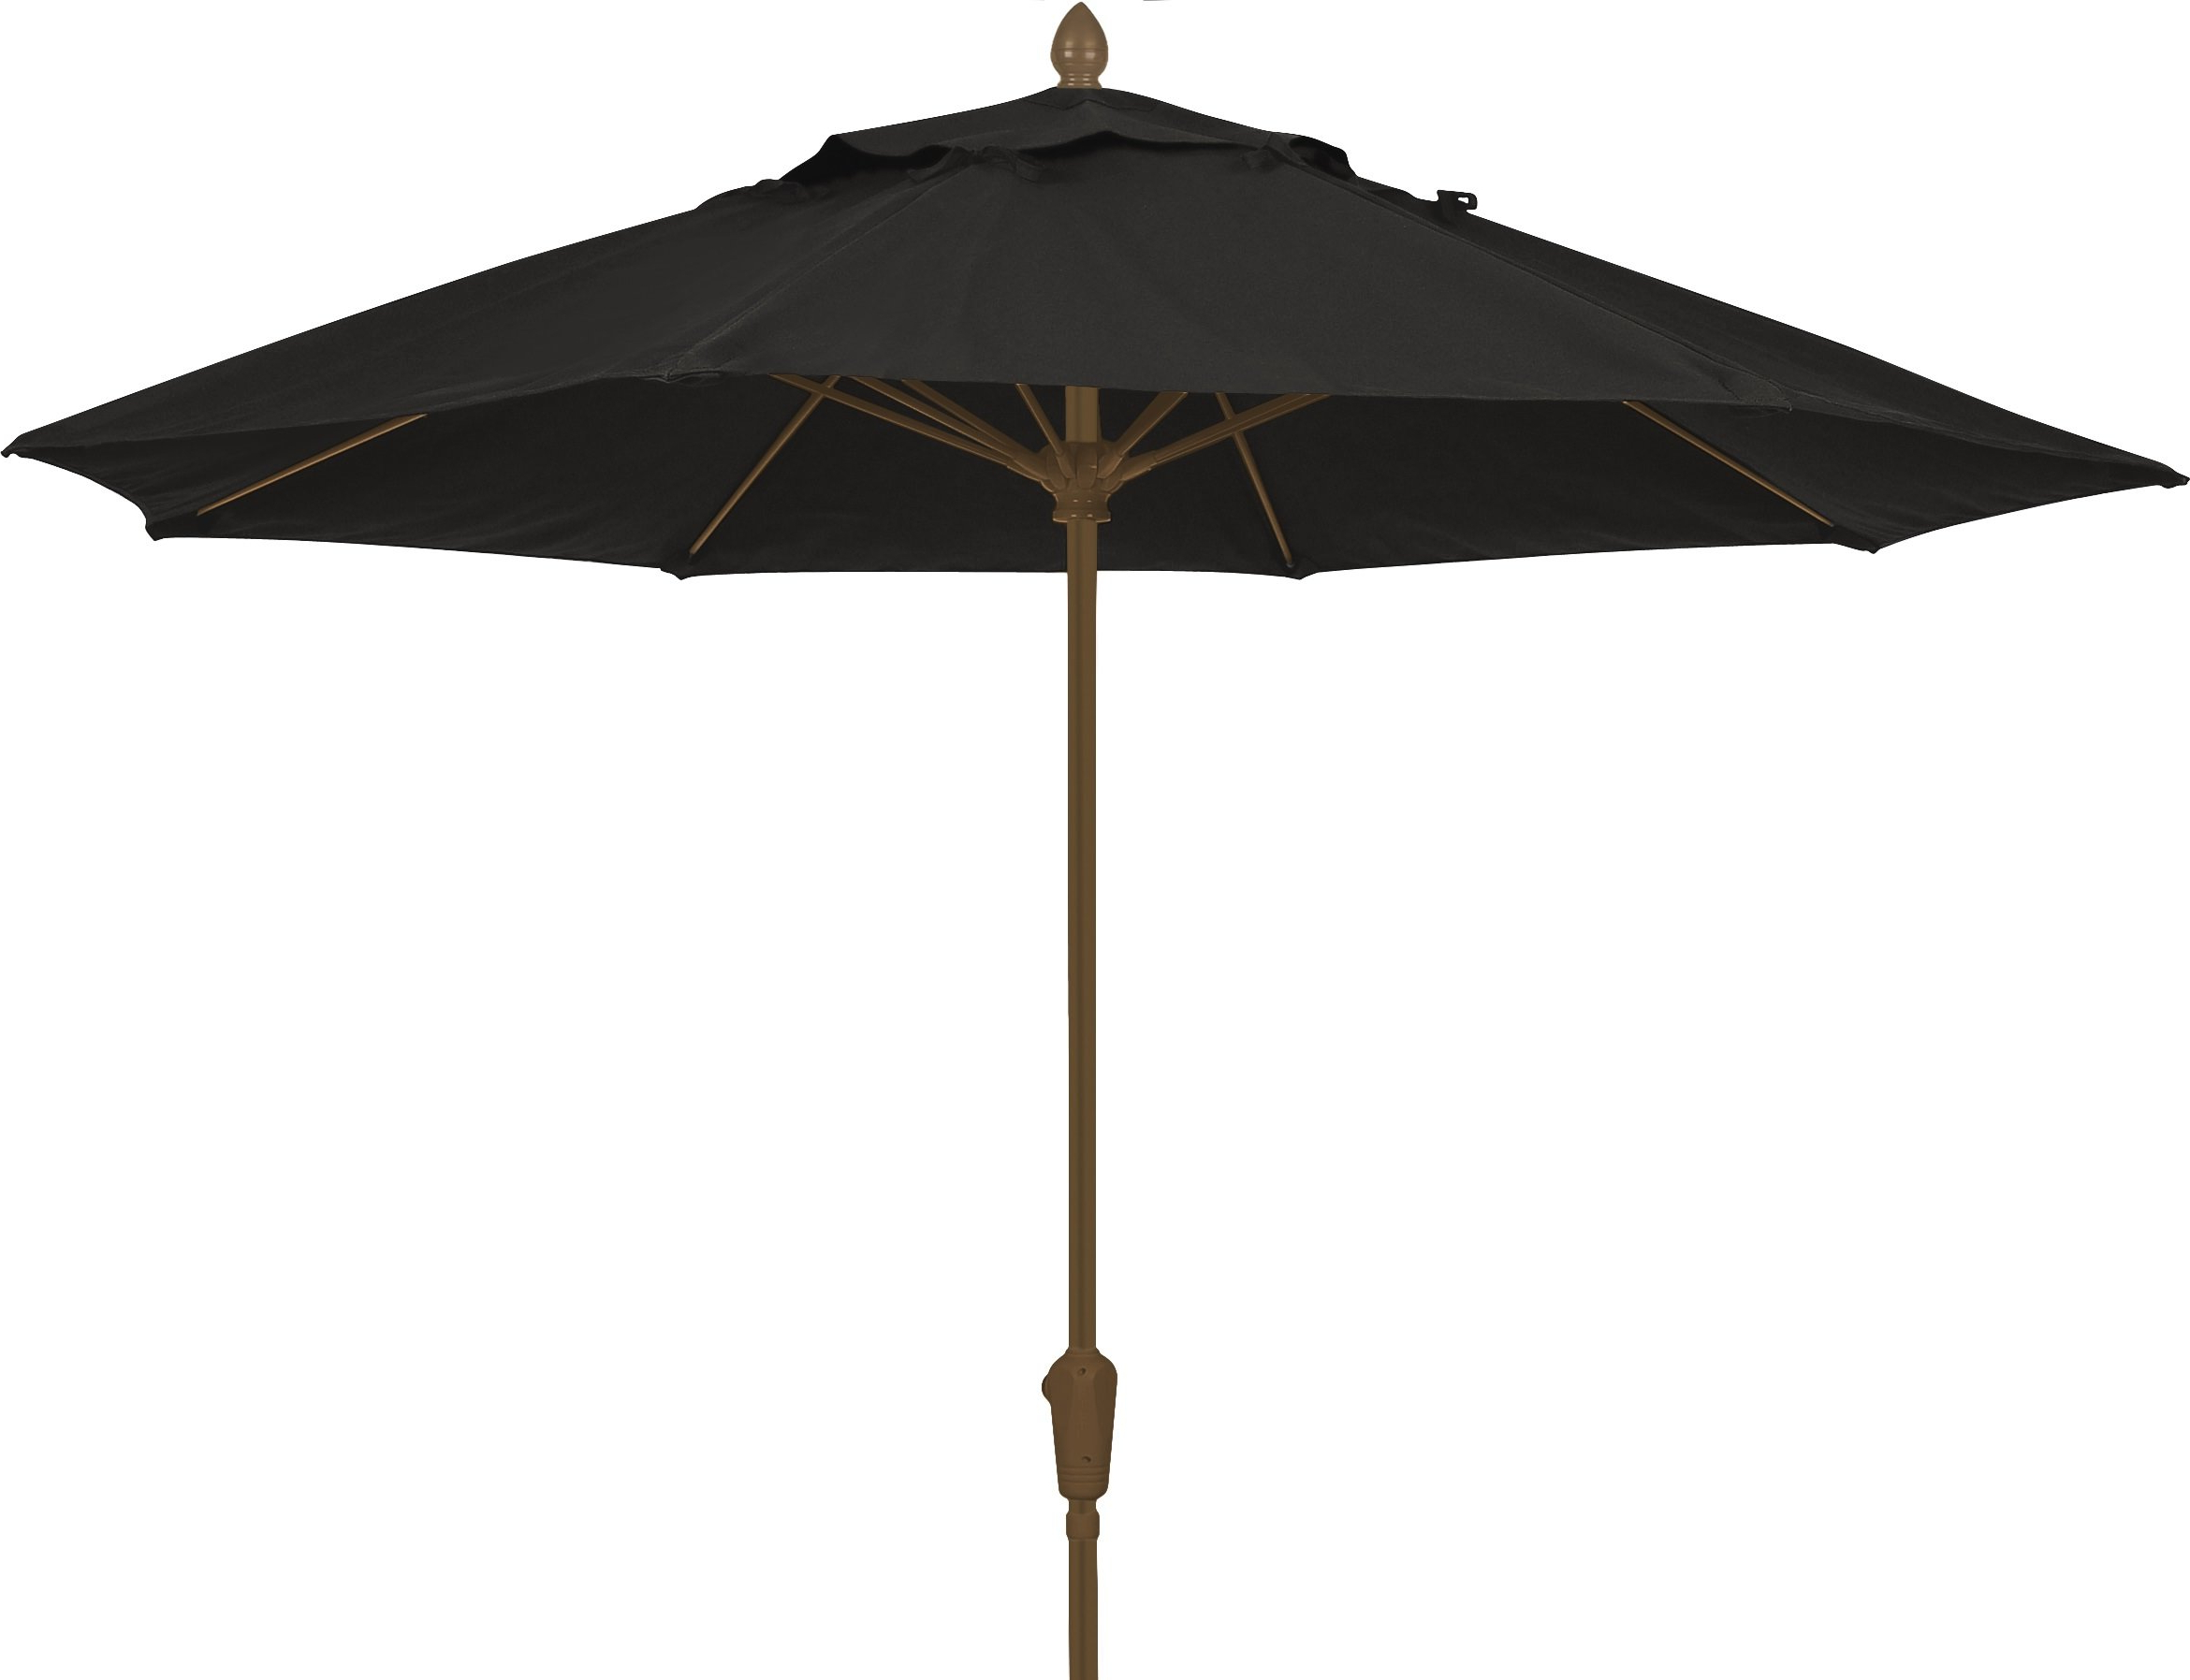 Alexander Elastic Rectangular Market Sunbrella Umbrellas With Popular Prestige 9' Market Sunbrella Umbrella (View 8 of 20)